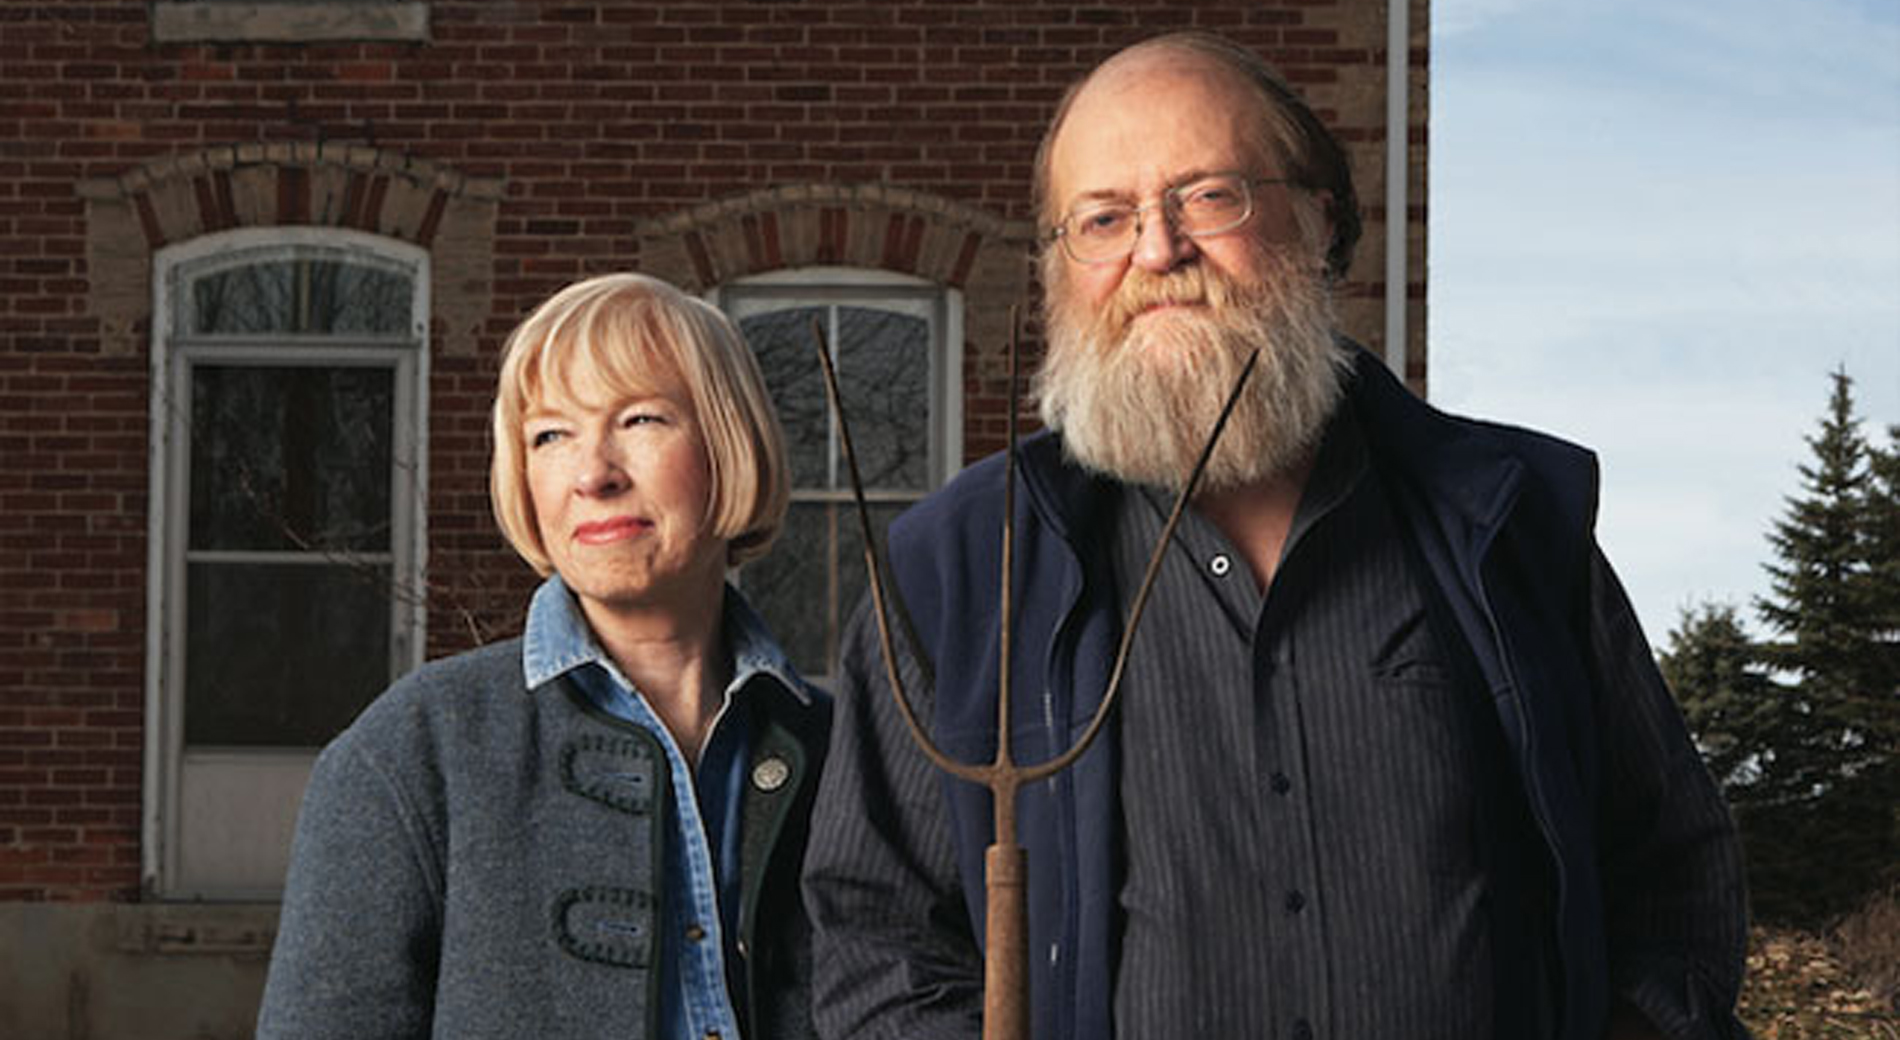 Bearded man holding a pitch fork standing beside a blonde woman.